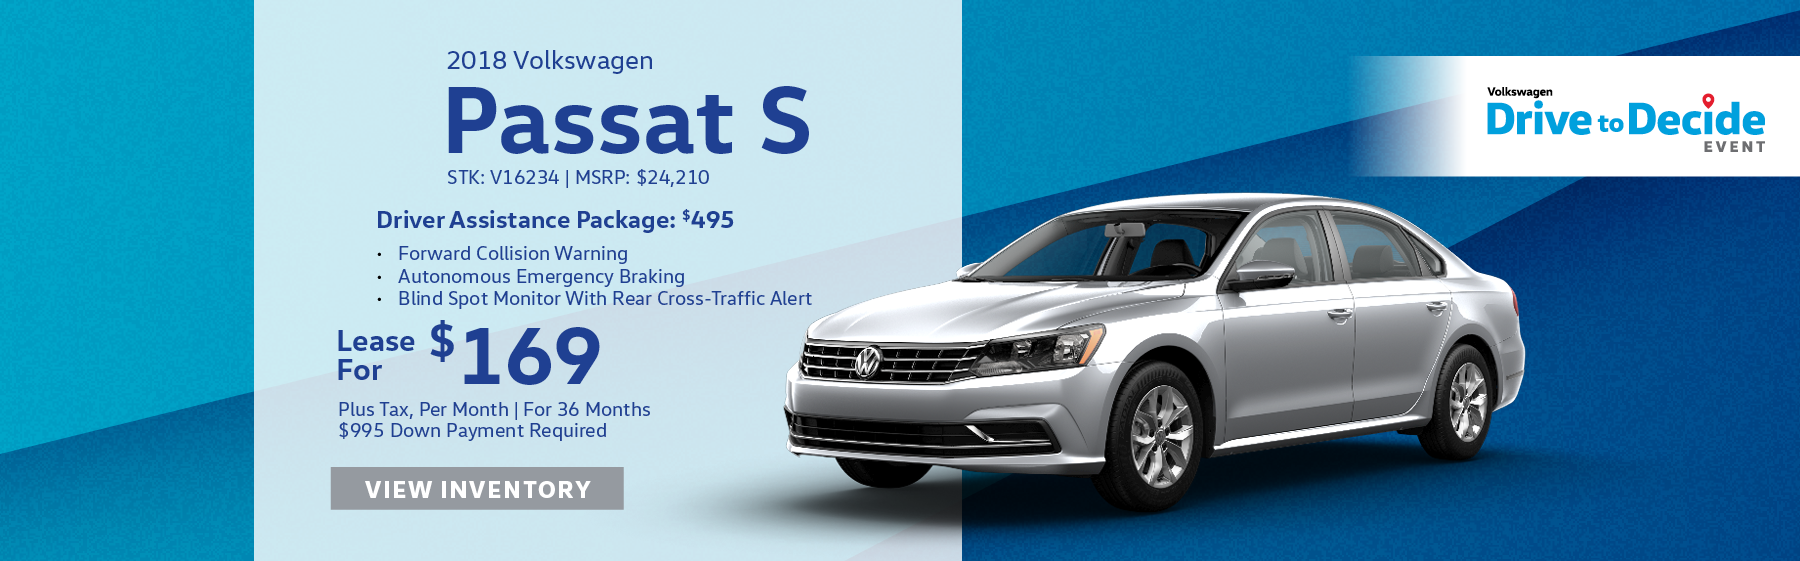 Lease the 2018 Volkswagen Passat S for $169 per month, plus tax for 36 months. Click here to view inventory.